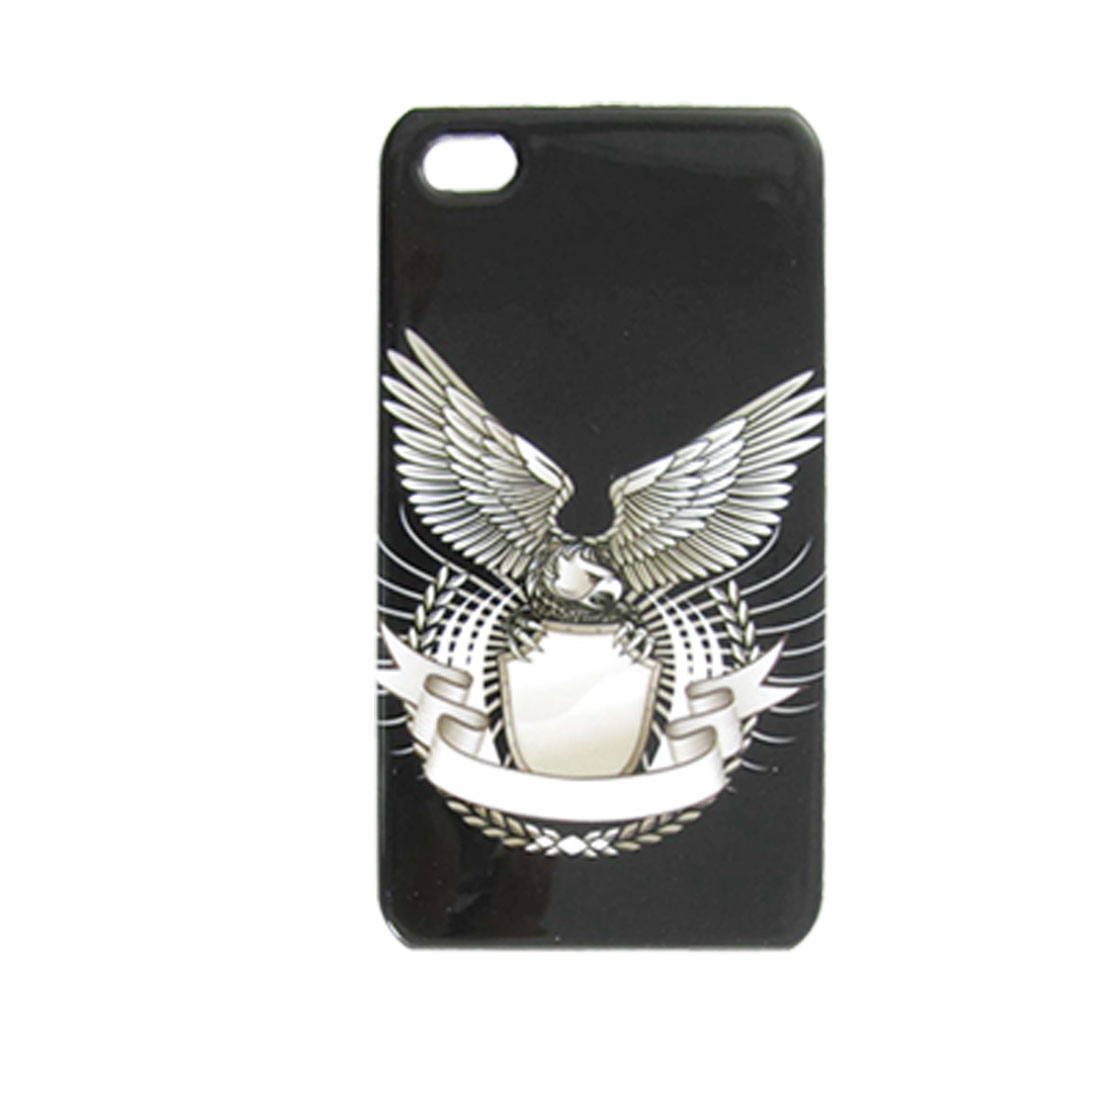 Eagle Pattern Black Base Hard Plastic Back Case for iPhone 4 4G